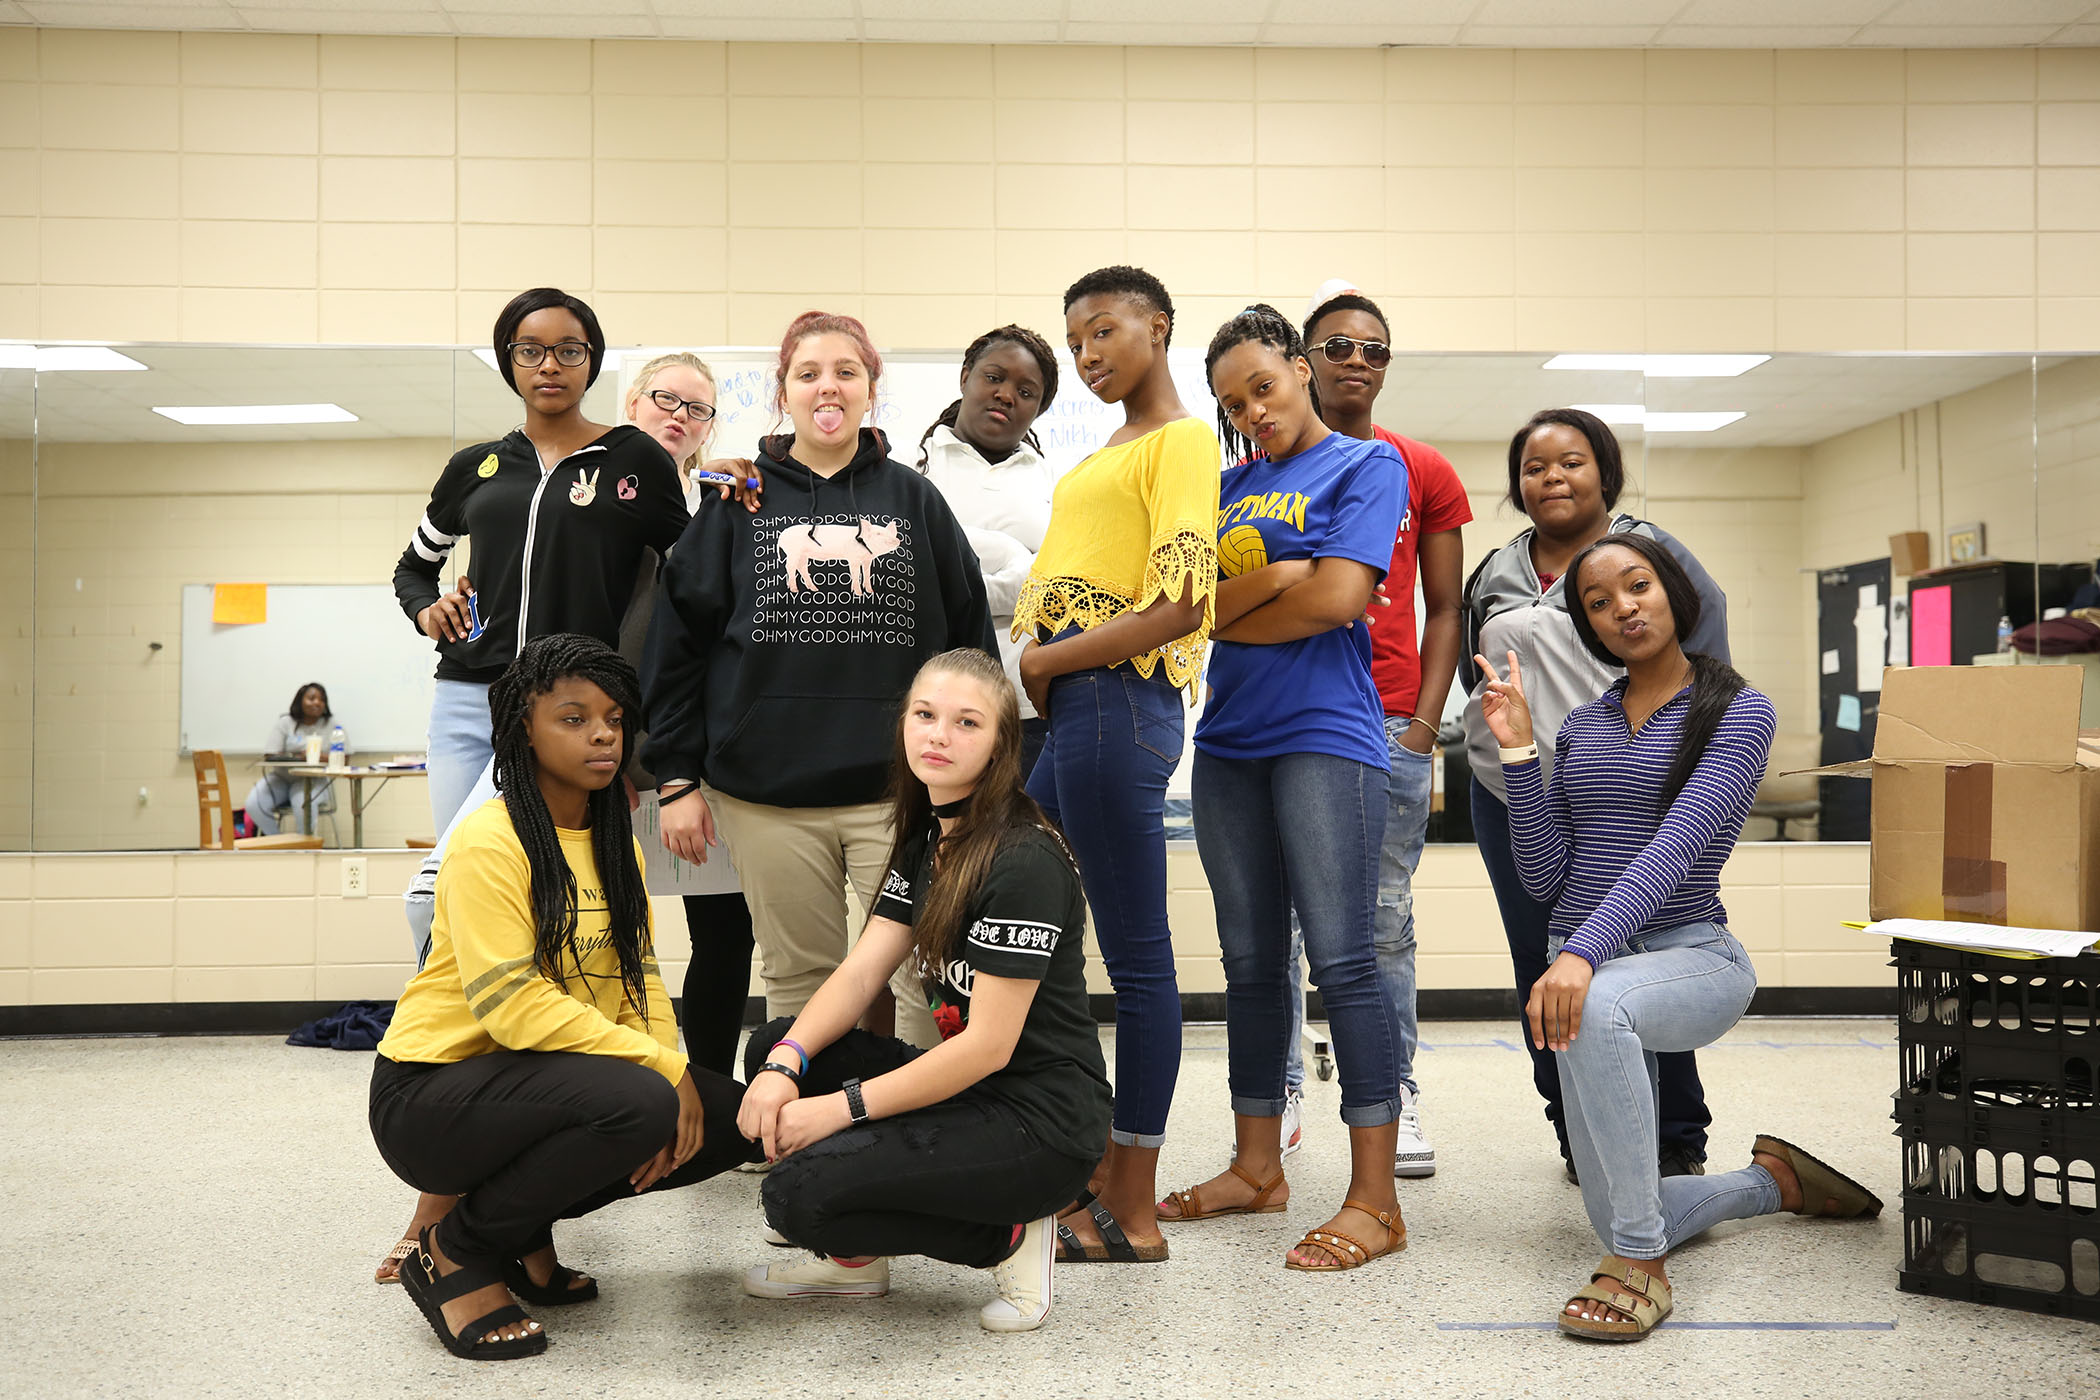 Mrs. Hines' theatre students pose for a photo.